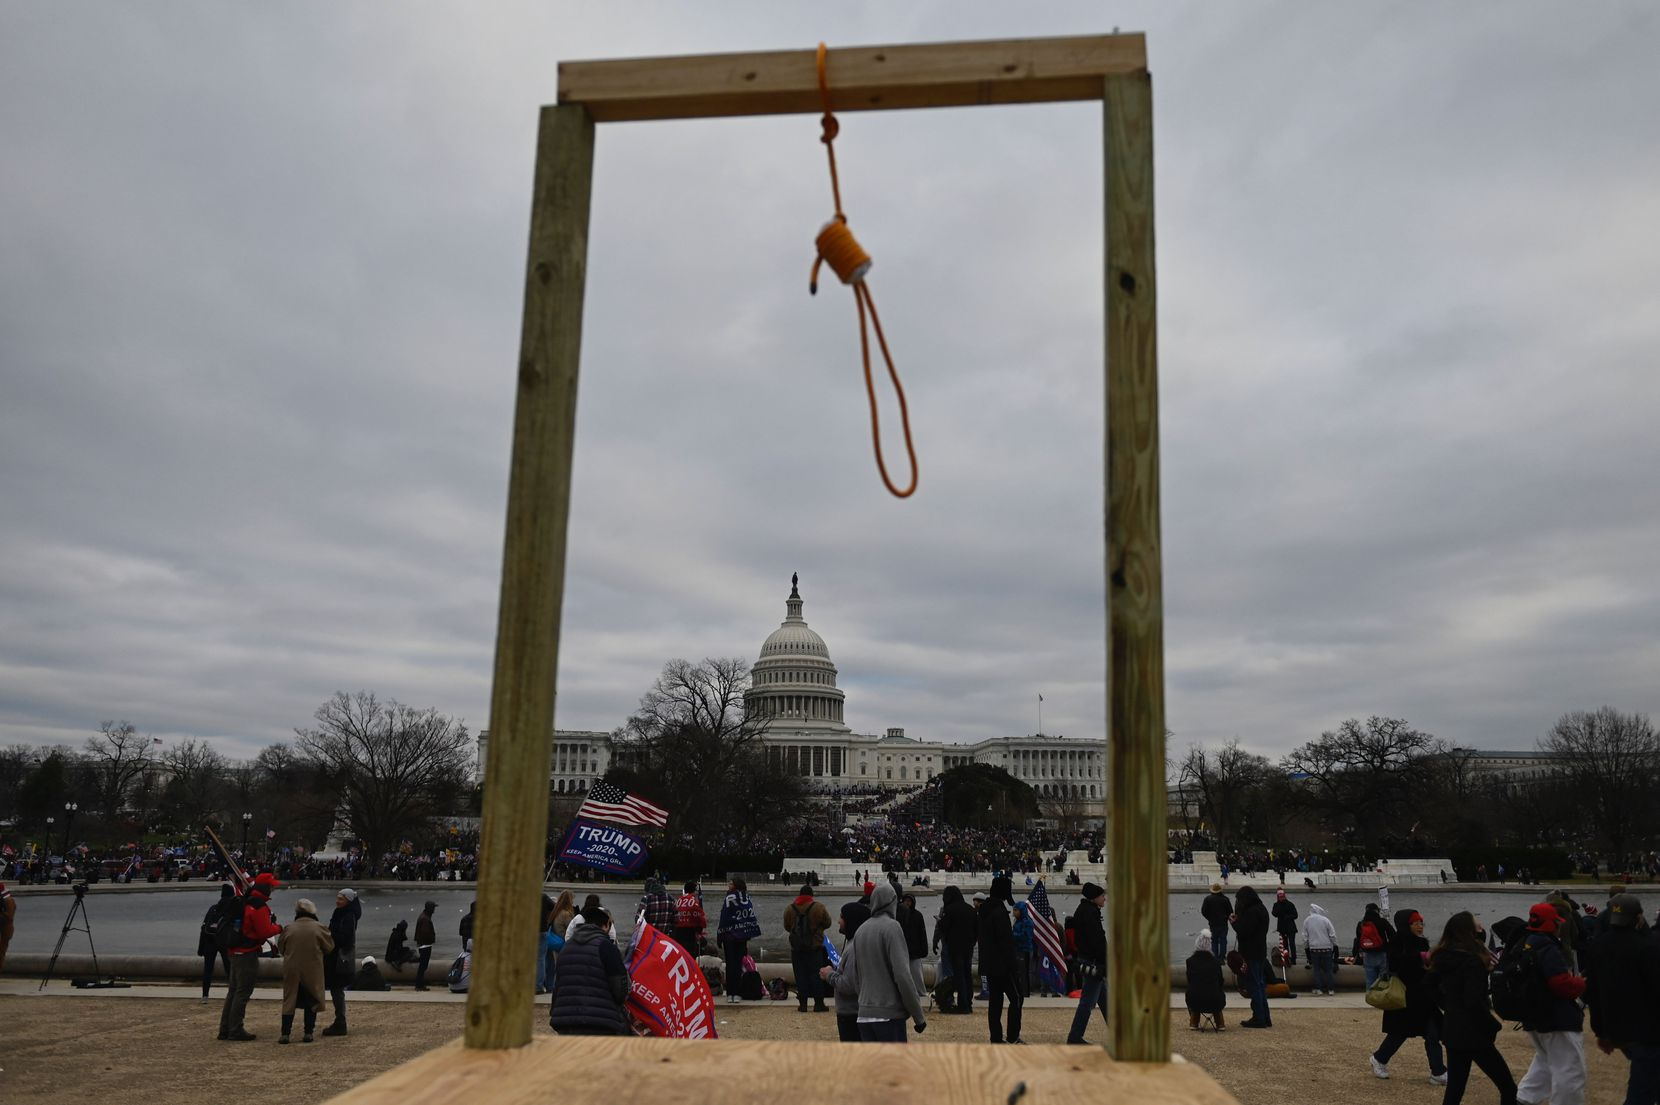 Supporters of US President Donald Trump gather on the West side of the US Capitol in Washington DC on January 6, 2021. - Demonstrators breeched security and entered the Capitol as Congress debated the a 2020 presidential election Electoral Vote Certification. (Photo by ANDREW CABALLERO-REYNOLDS / AFP) (Photo by ANDREW CABALLERO-REYNOLDS/AFP via Getty Images)